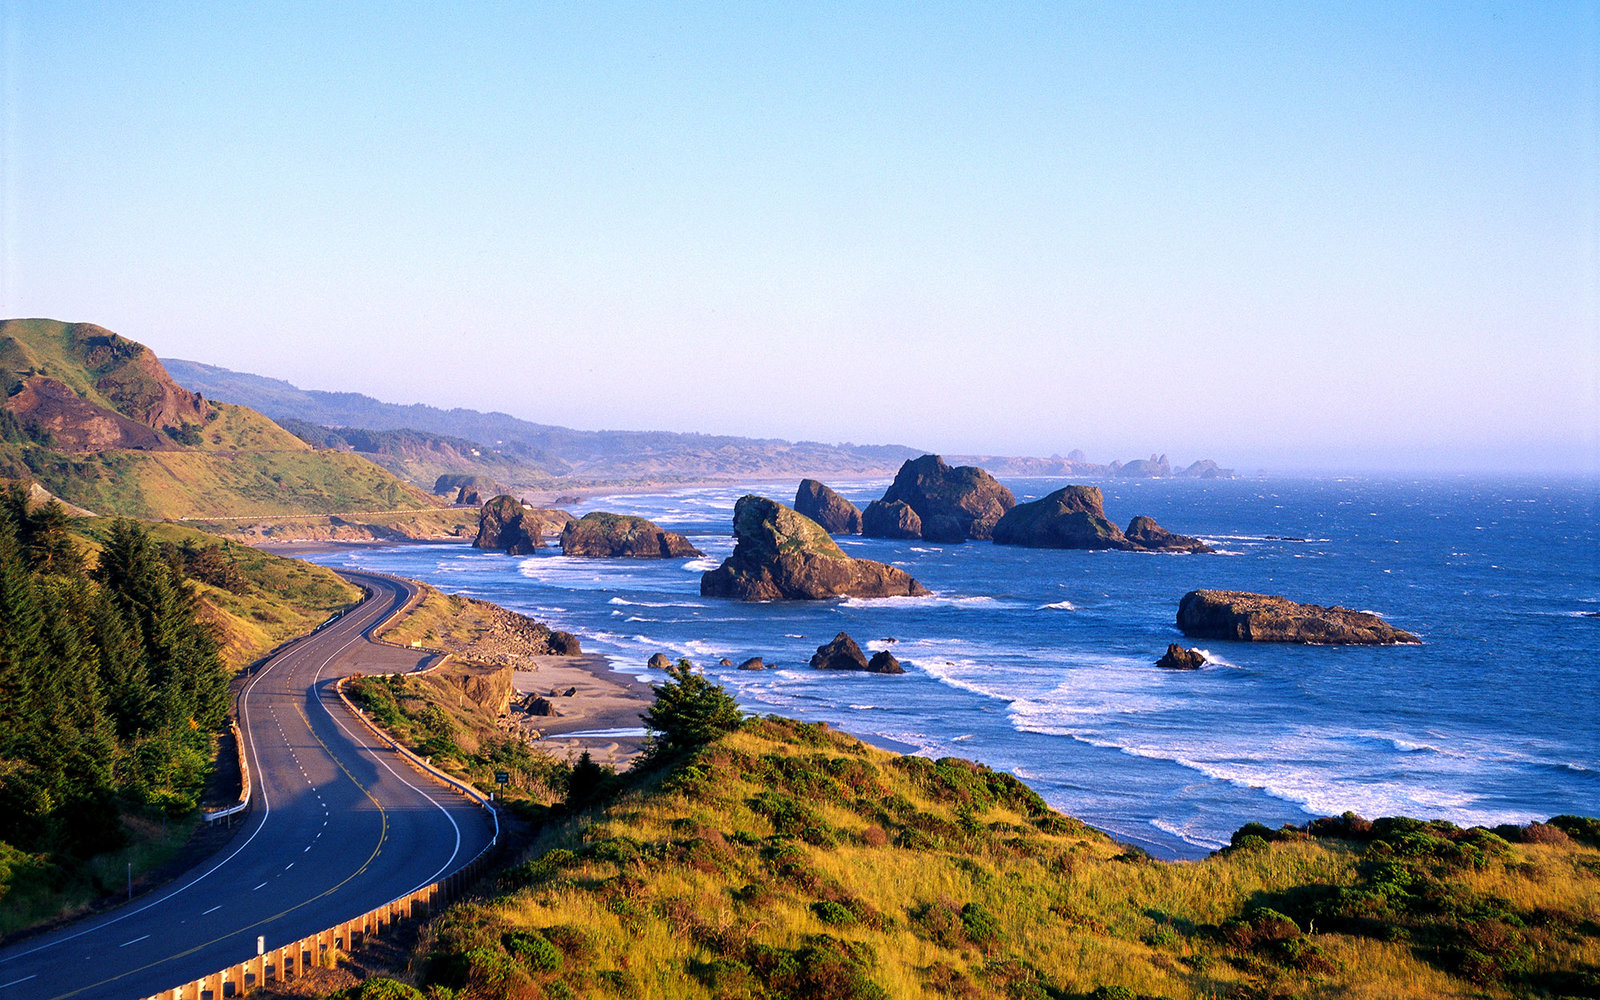 Highway 101 along the Oregon coast